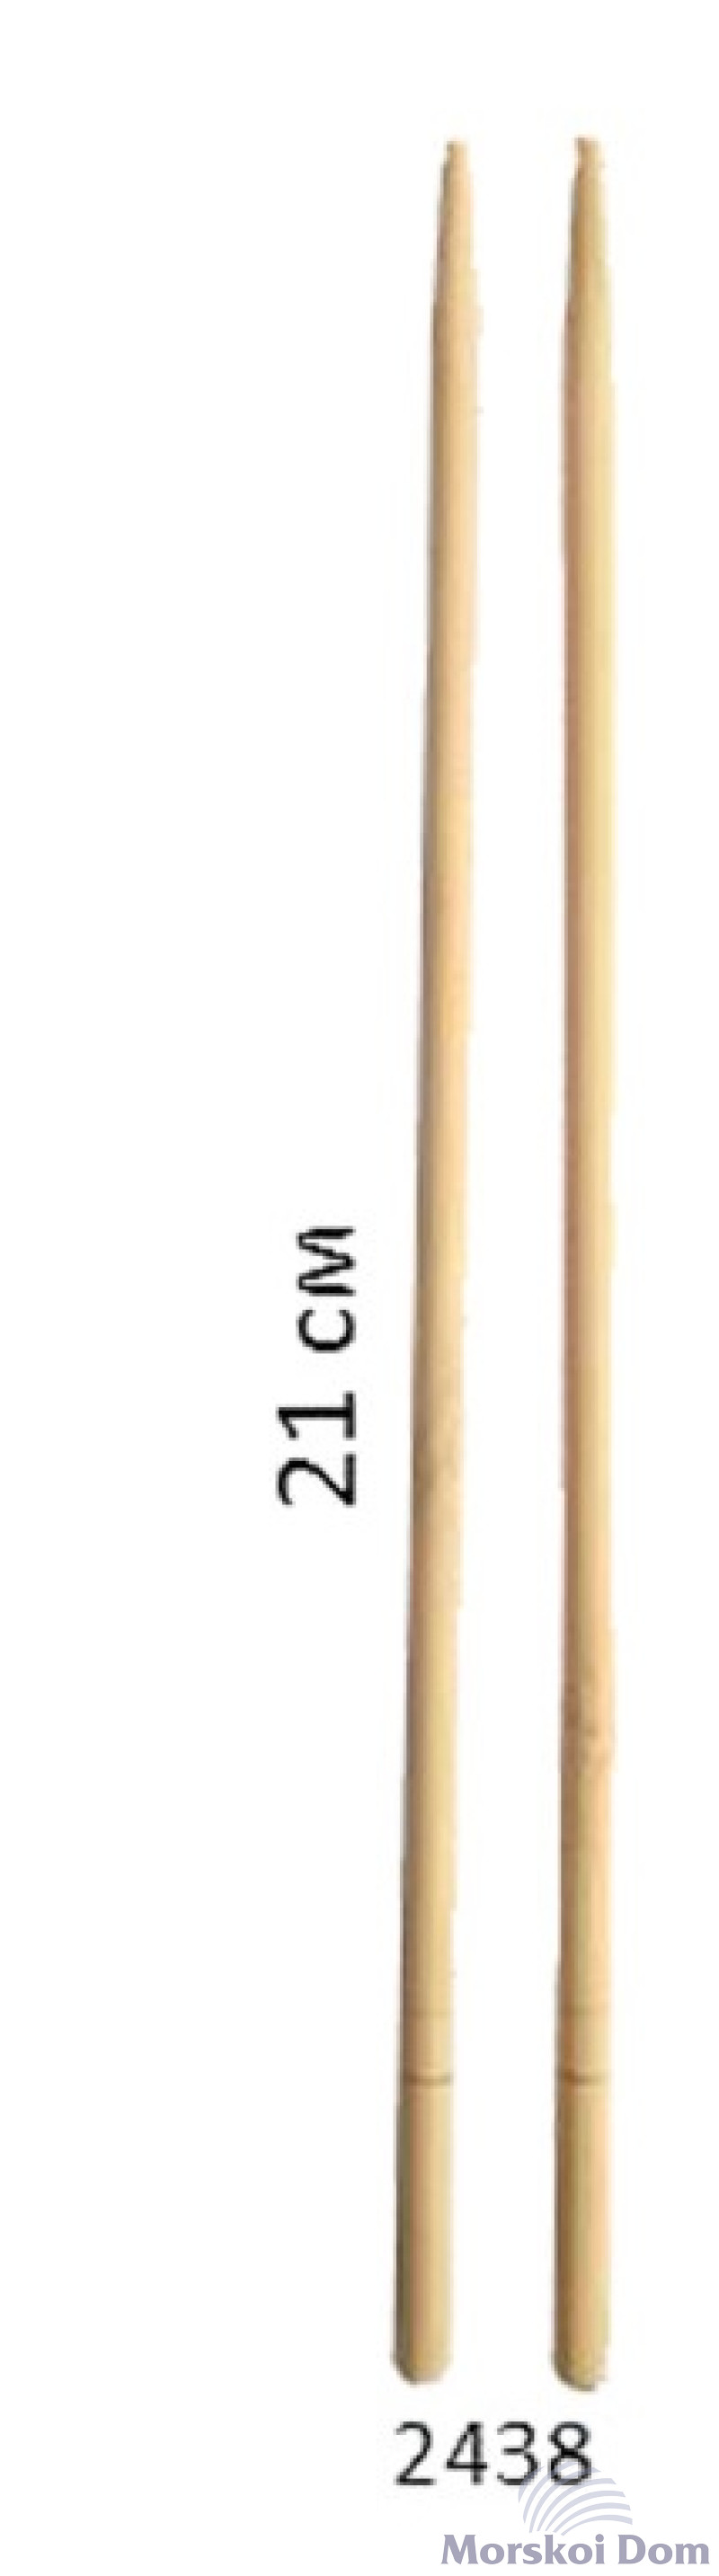 Bamboo sticks are separate 21cm. 18cm.